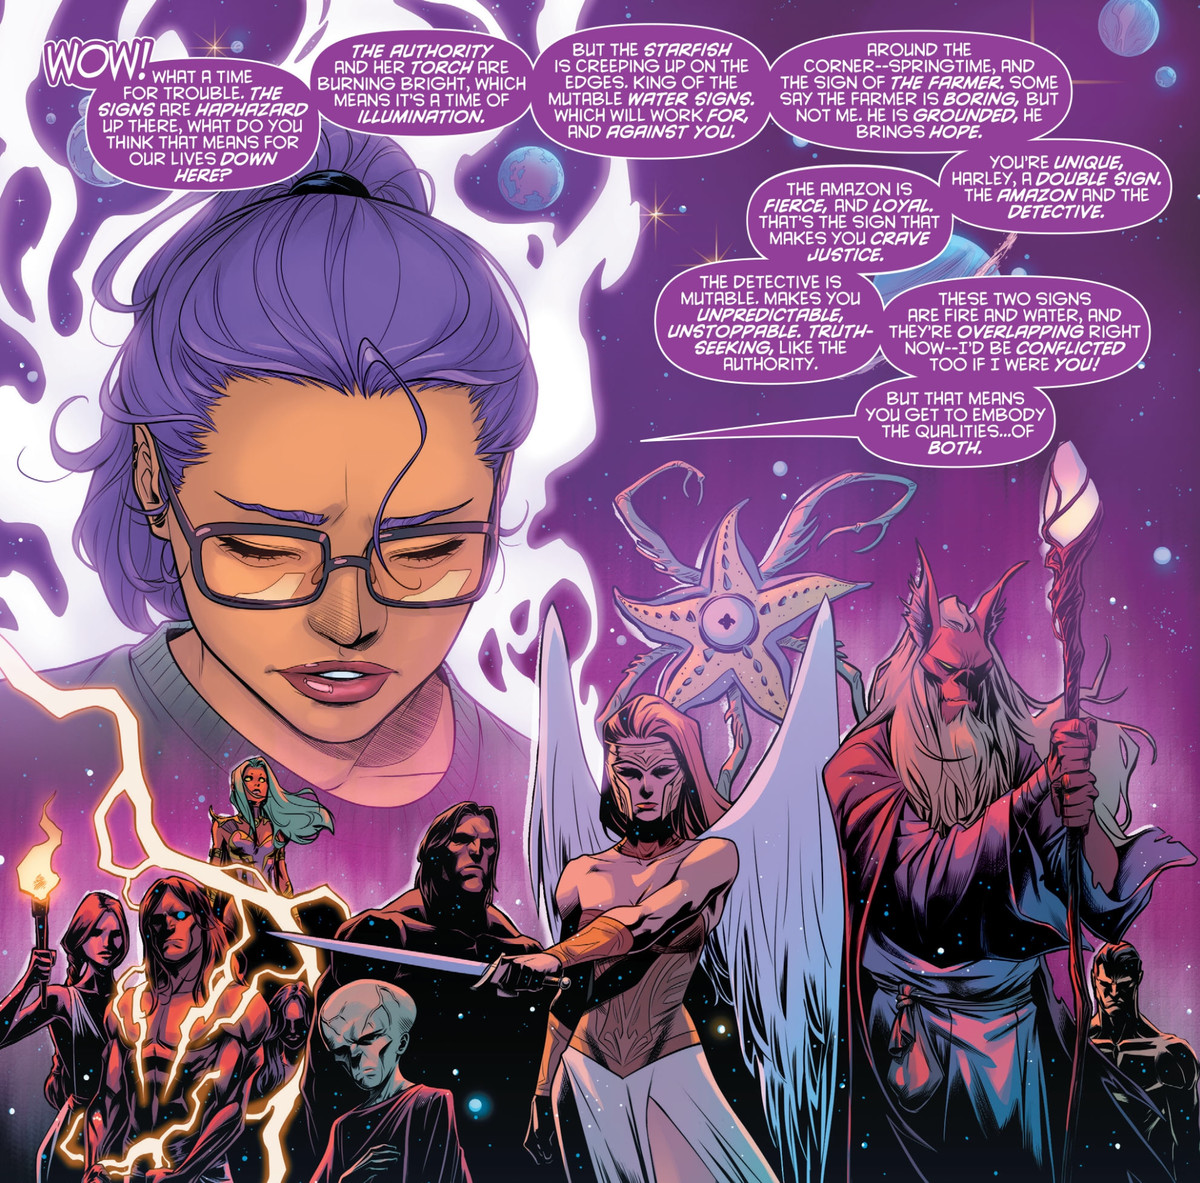 Charity XO, online zodiac expert, reads Harley Quinn's star chart, explaining the zodiac signs of the DC Universe, including the Authority, the Starfish, the Amazon, the Detective, and the Farmer, in Harley Quinn #73, DC Comics (2020).